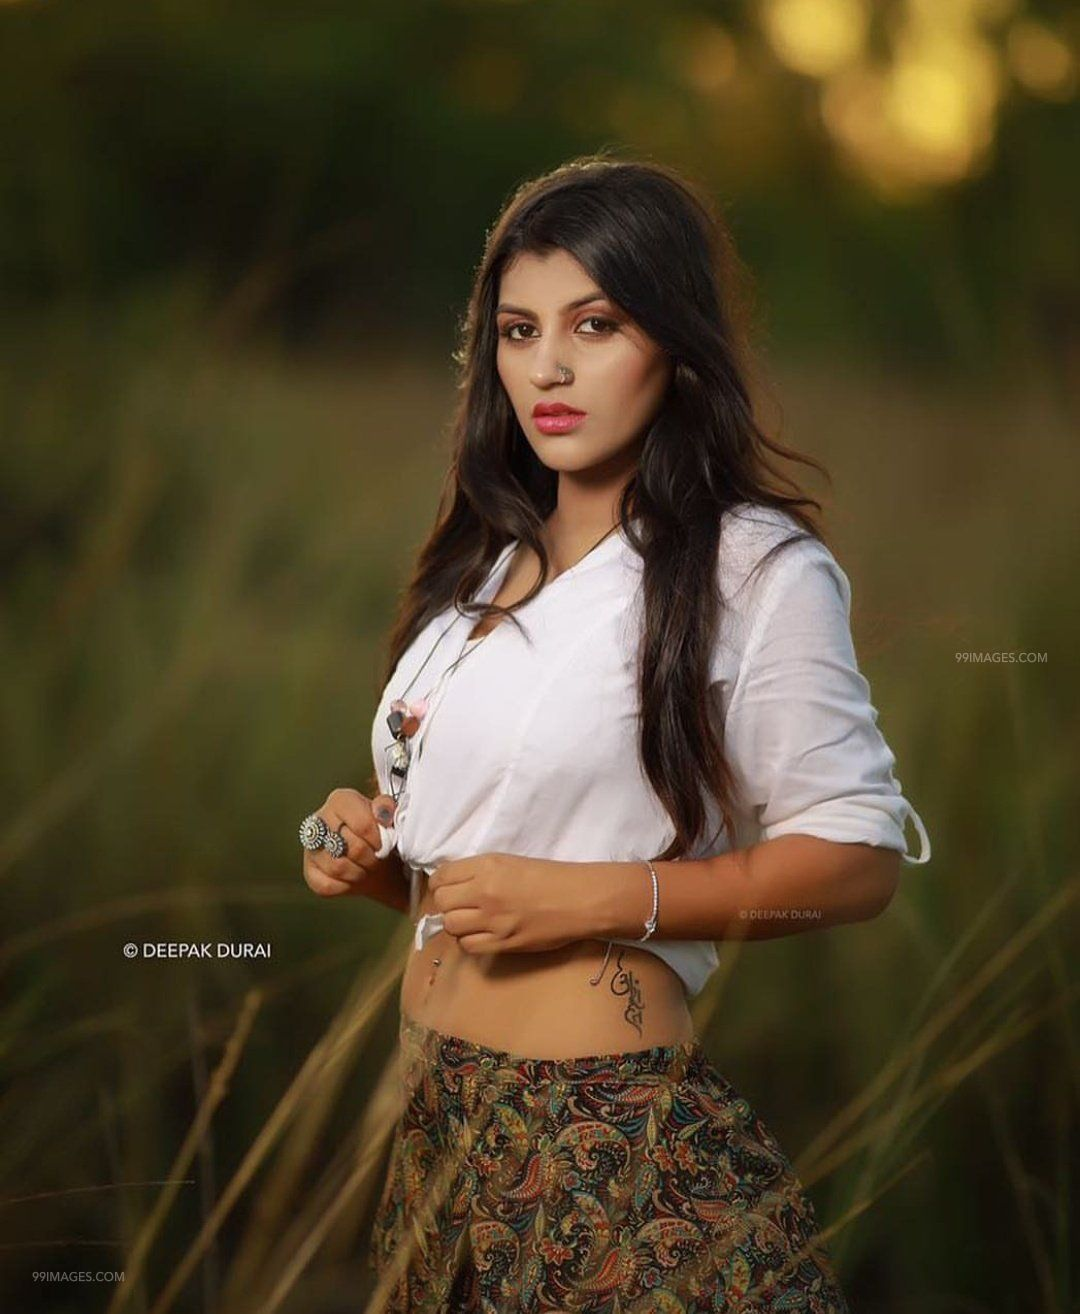 Yashika Anand Hot HD Photos (1080p) (yashika anand, yashika, bigg boss tamil, actress, kollywood) (68) - Yashika Anand